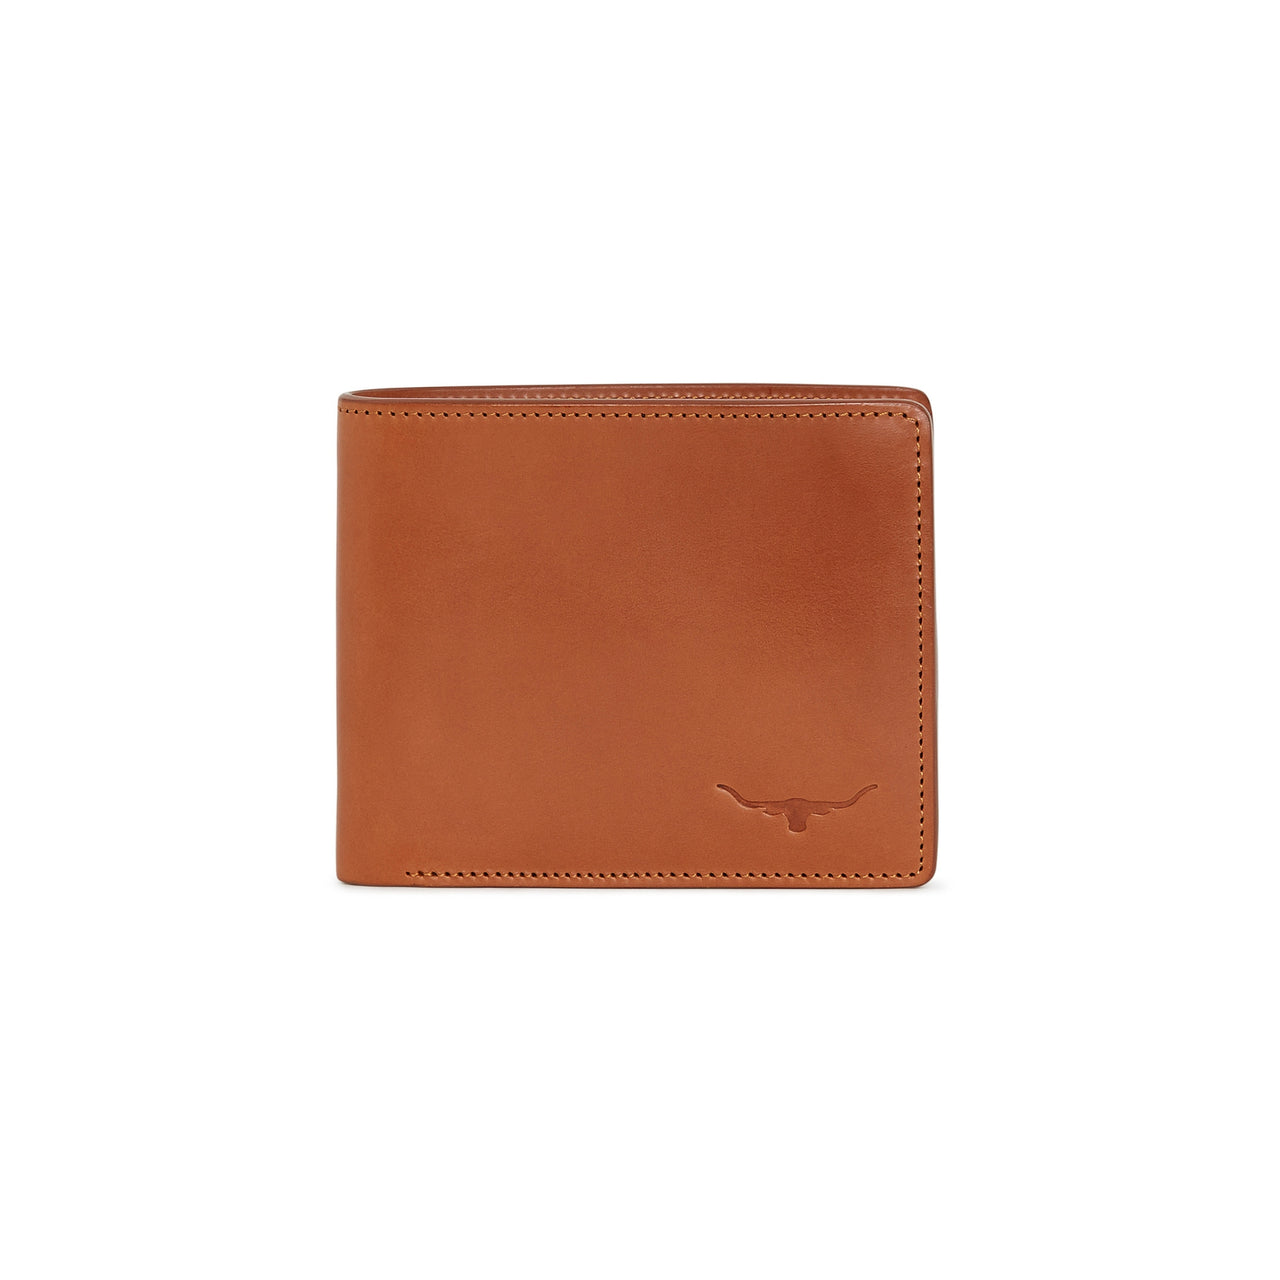 R-M-WilliamsCity-Bi-Fold-Wallet-Tan